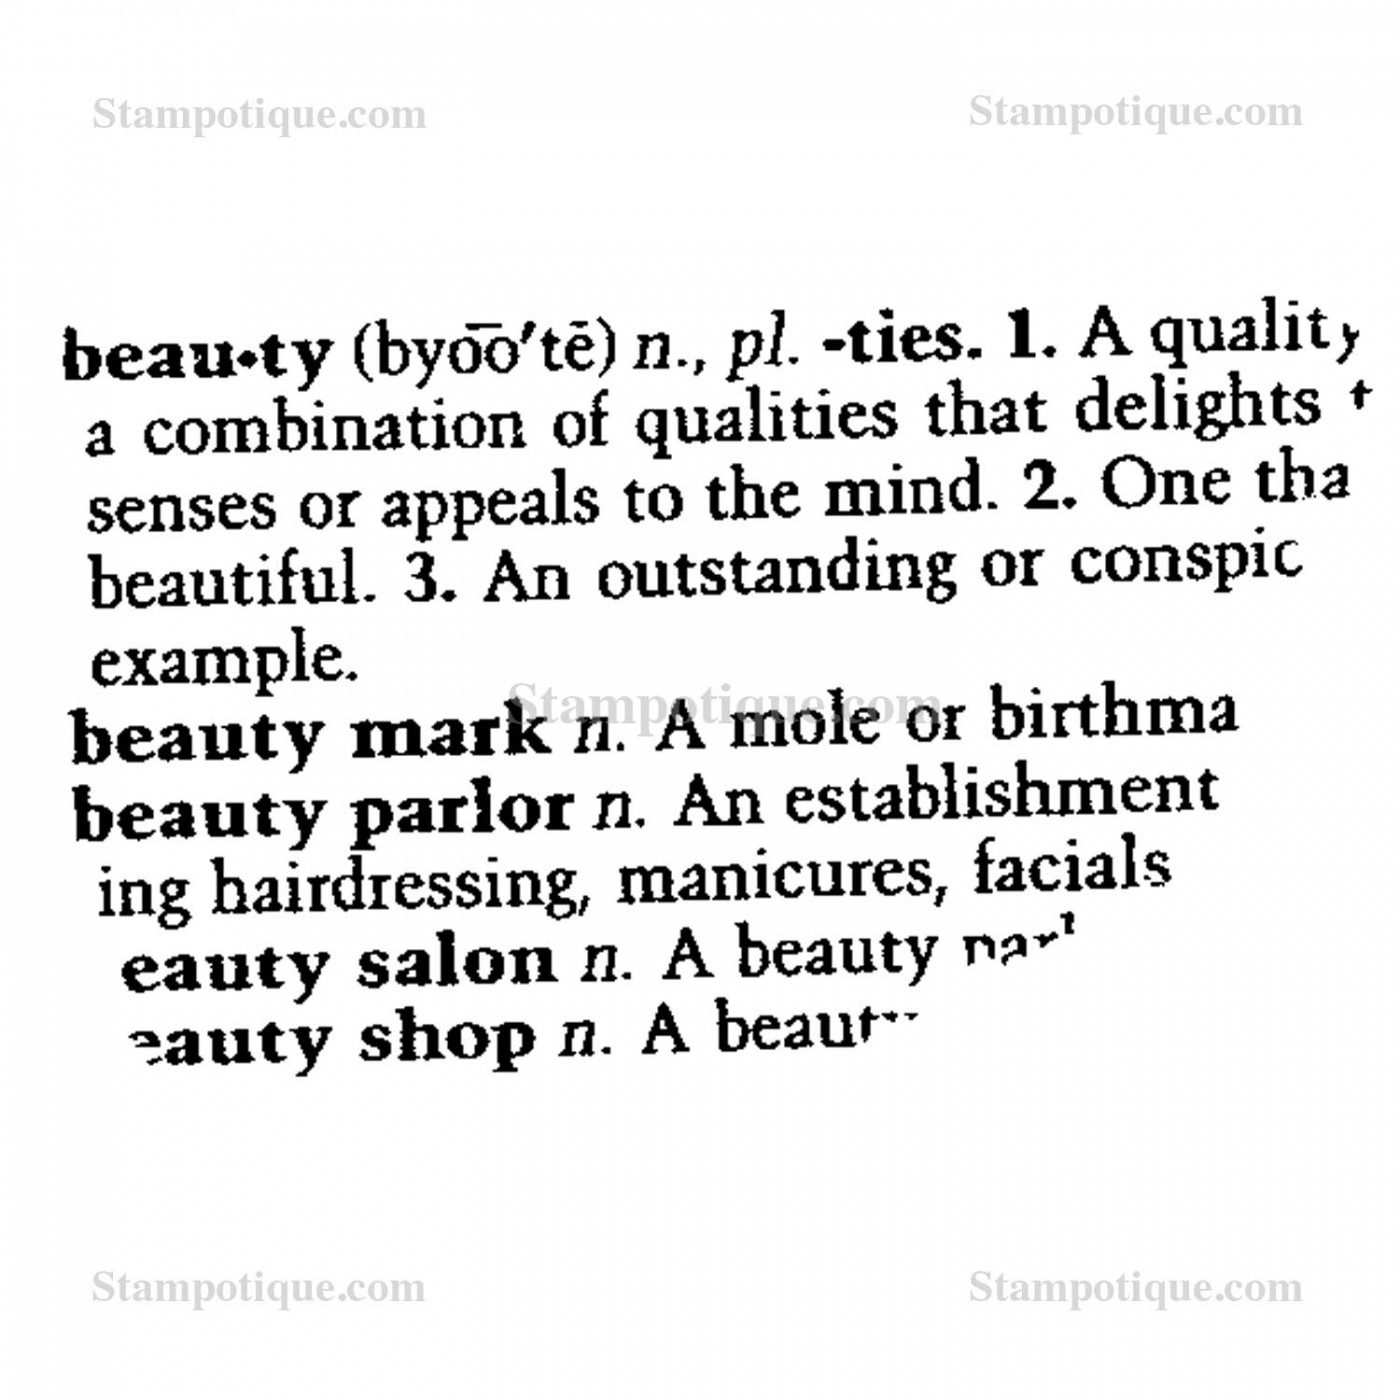 005 7070p Beauty Definition Essay Magnificent Introduction Writing Scholarship Pageant Titles 1400